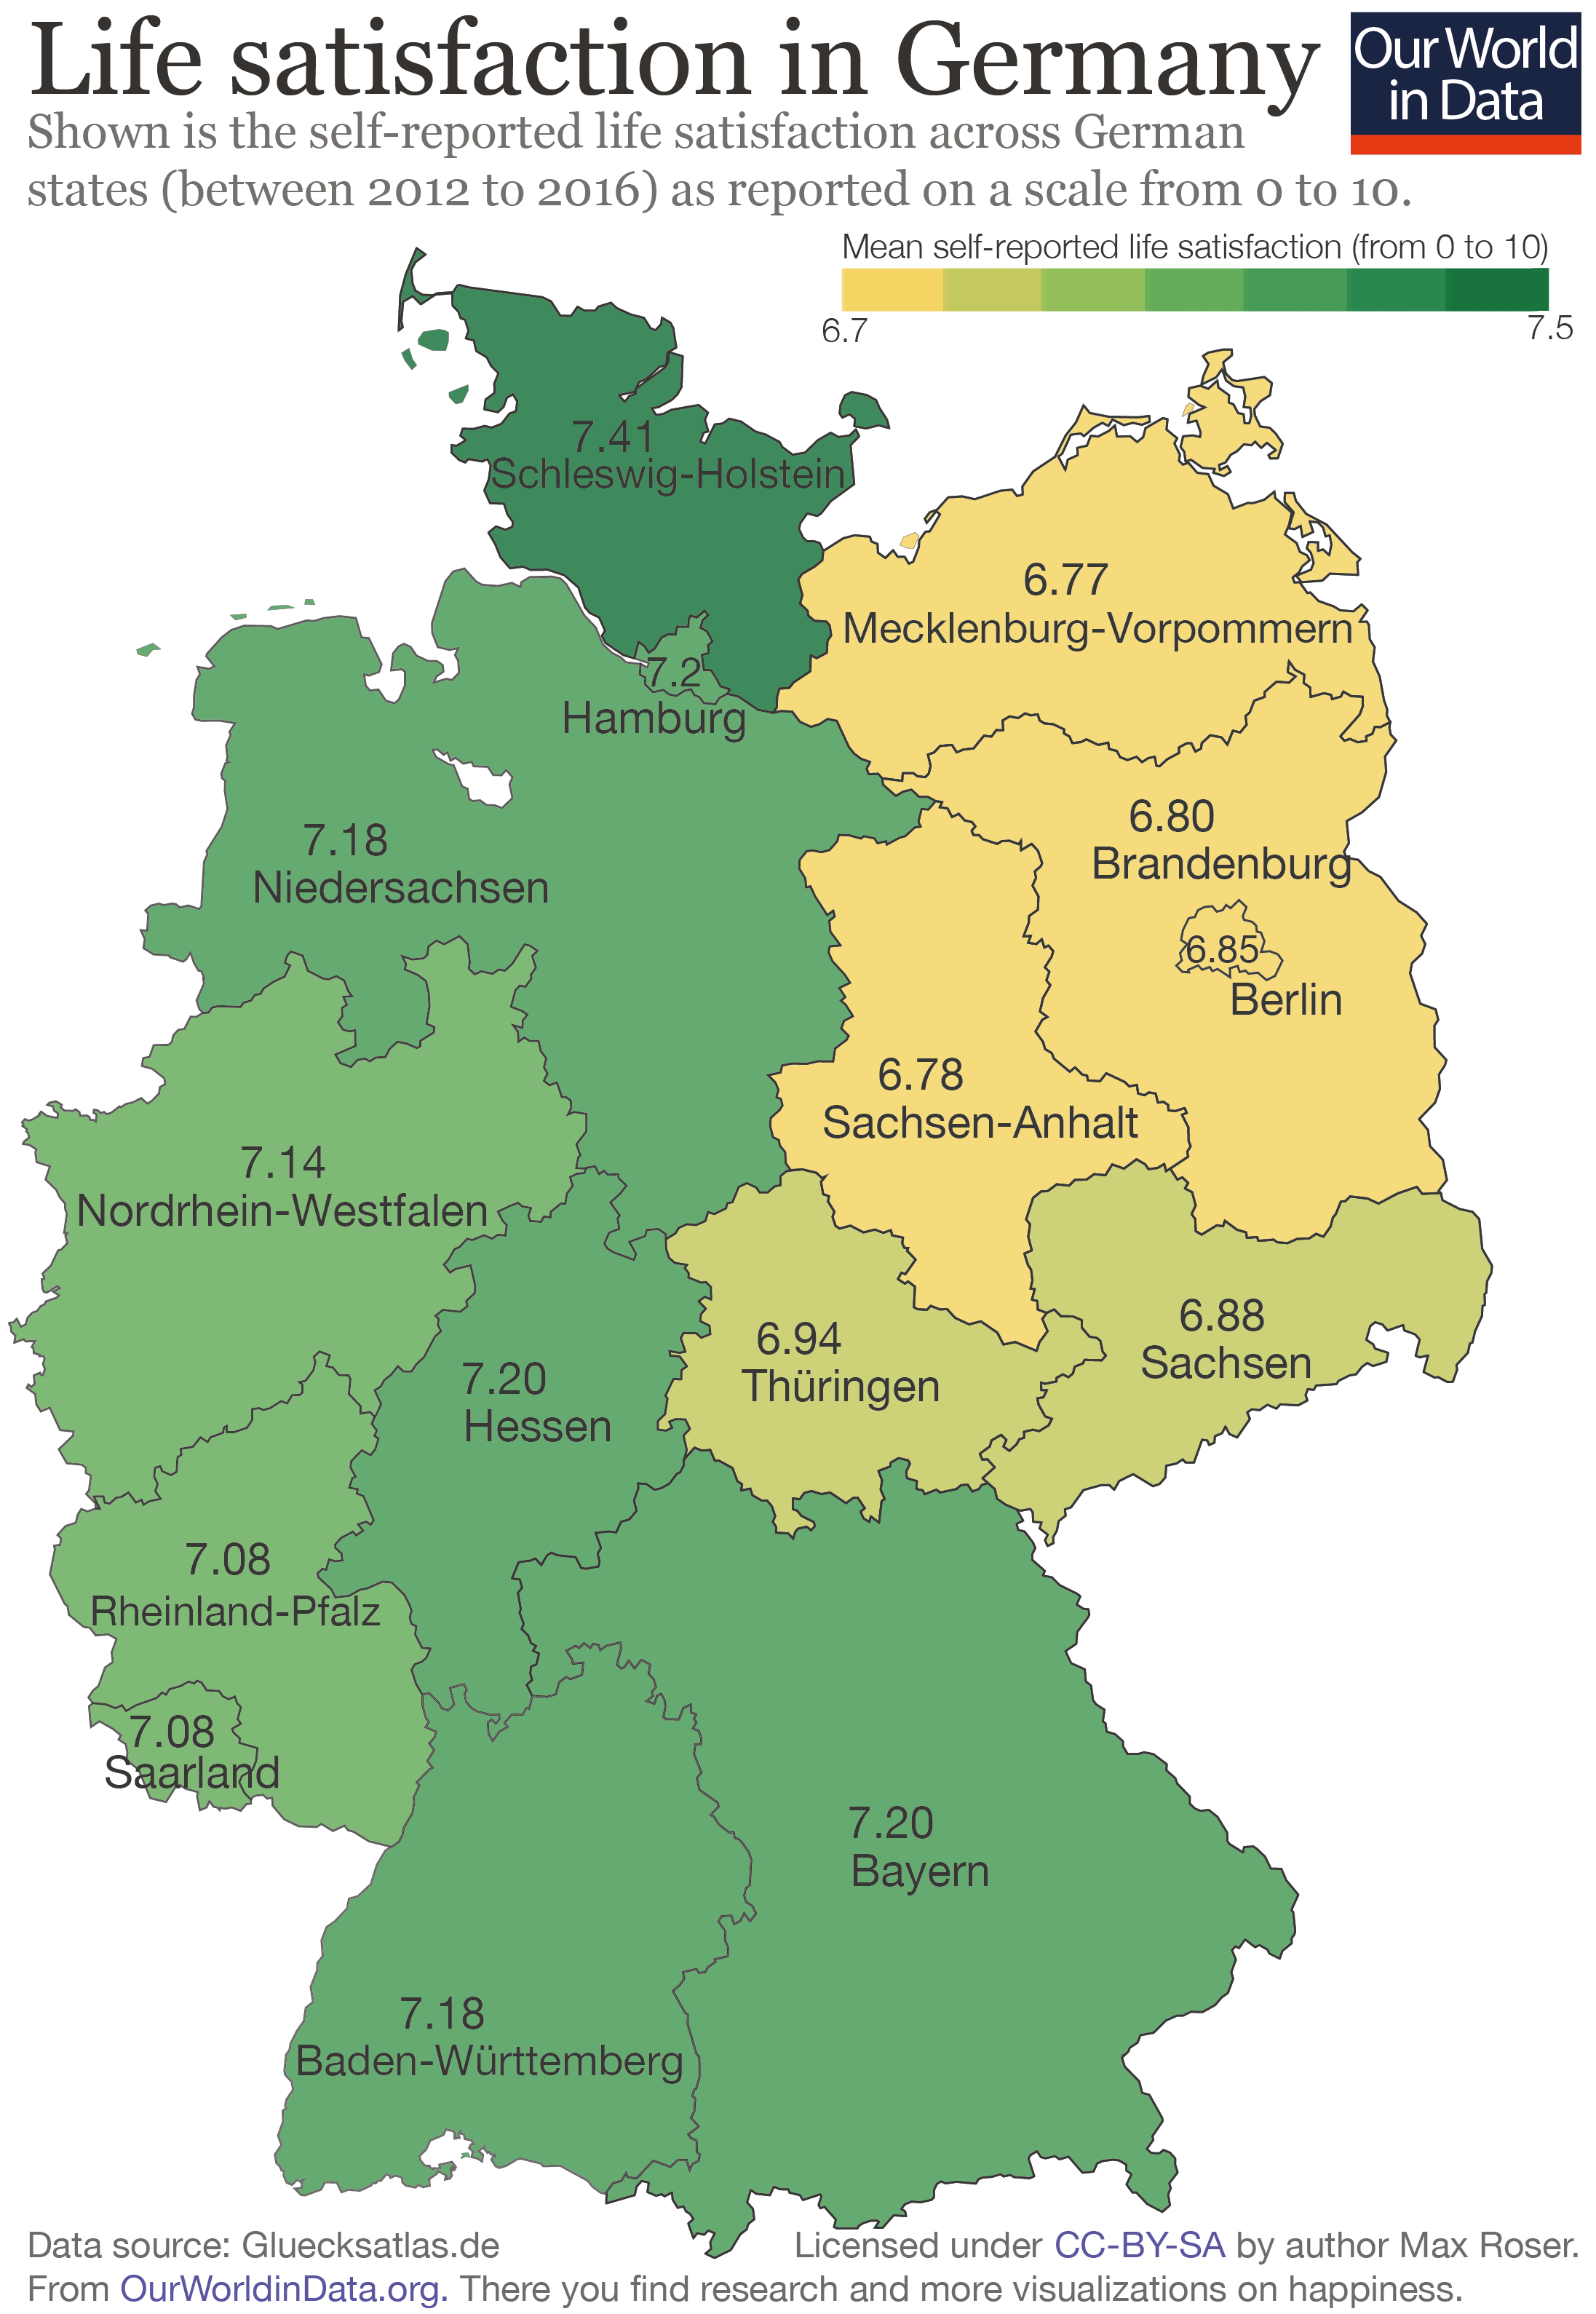 Life satisfaction in Germany